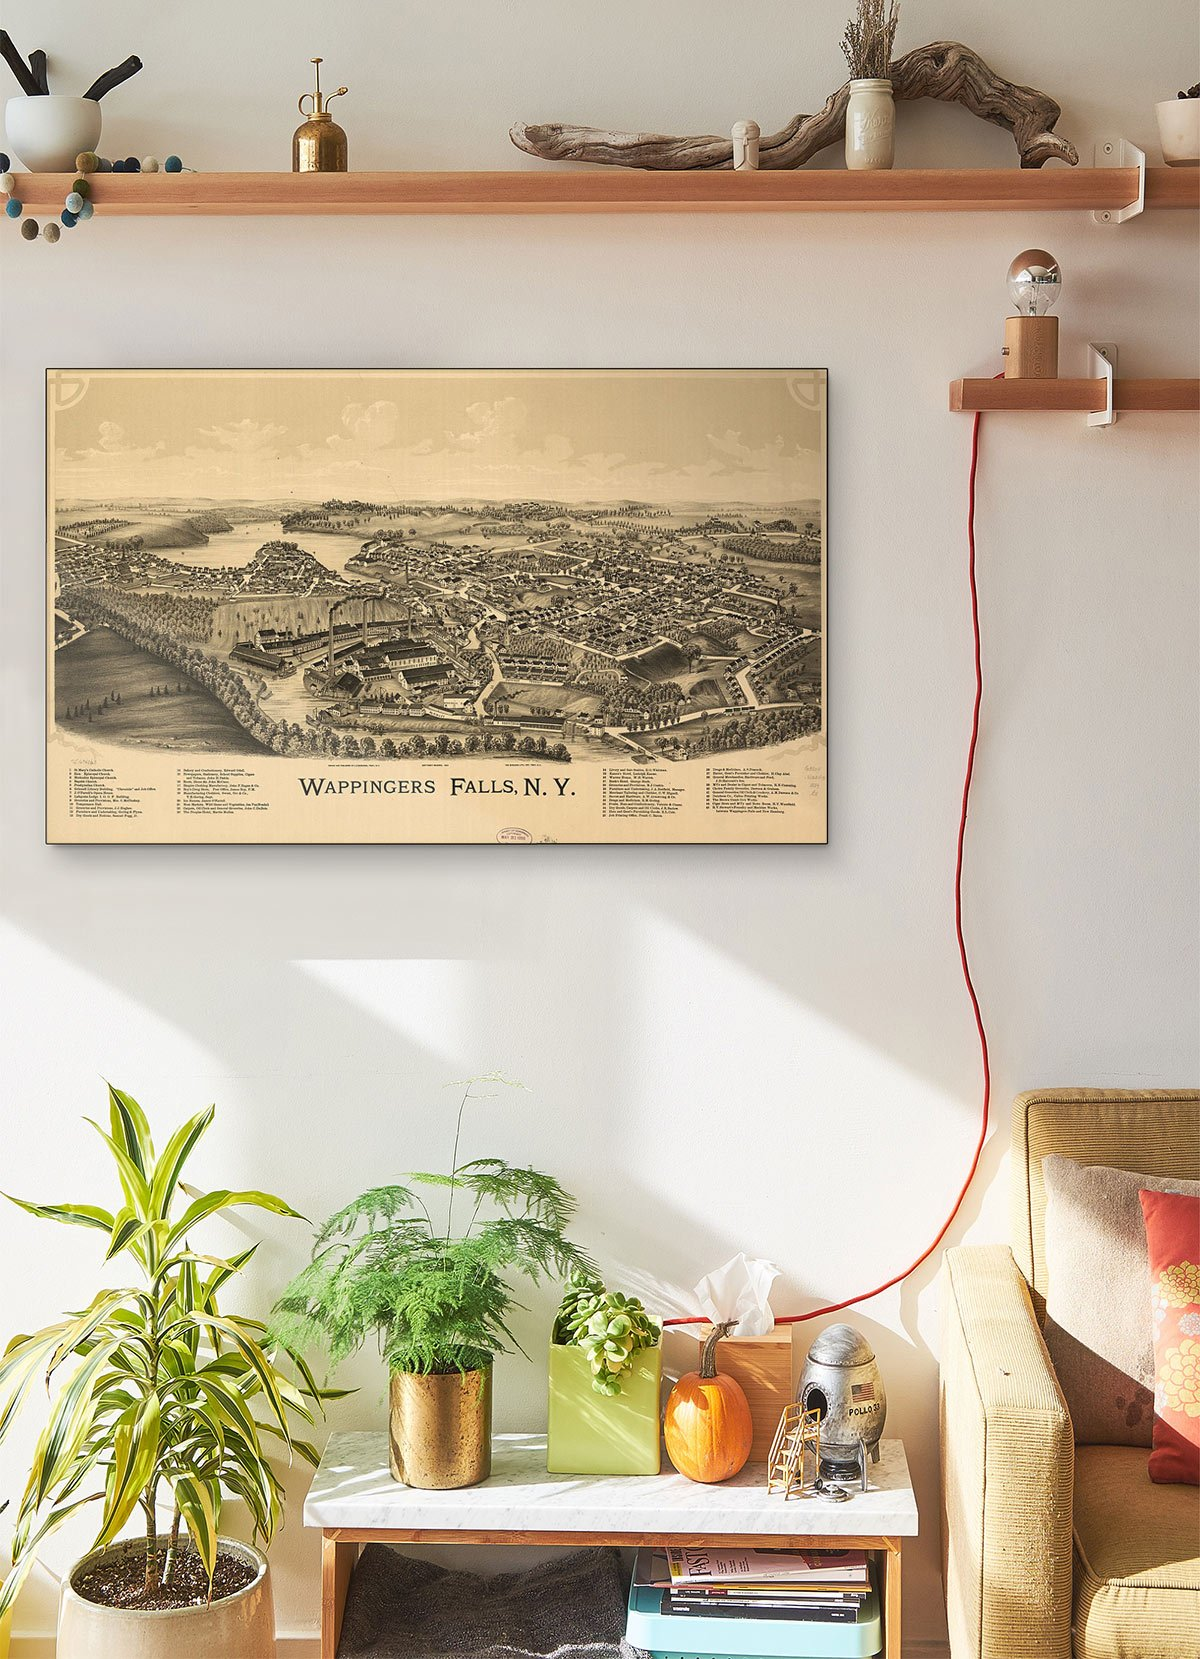 Wappingers Falls N.y LARGE Vintage Map